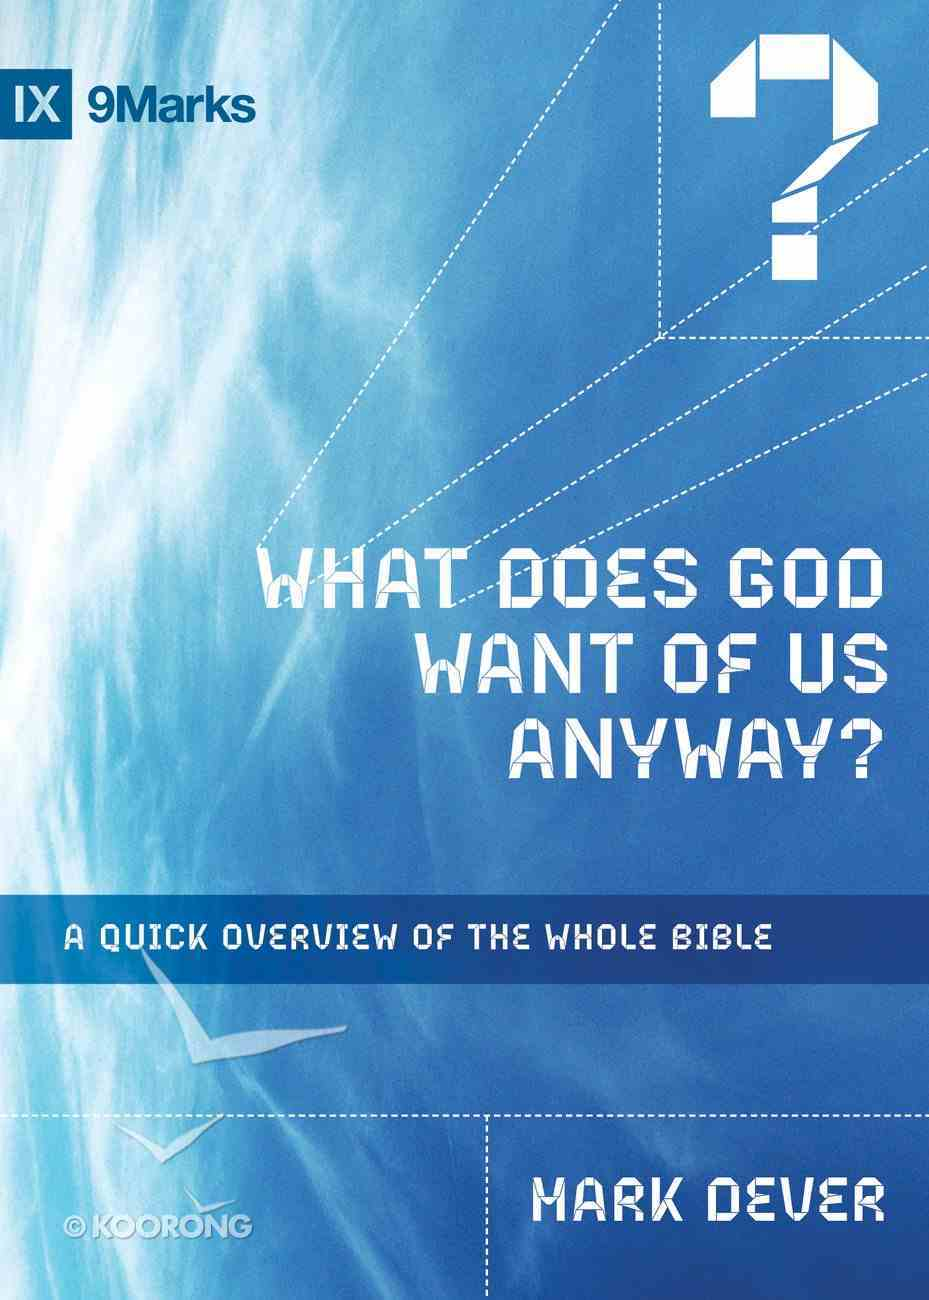 What Does God Want of Us Anyway? (9marks Series) eBook